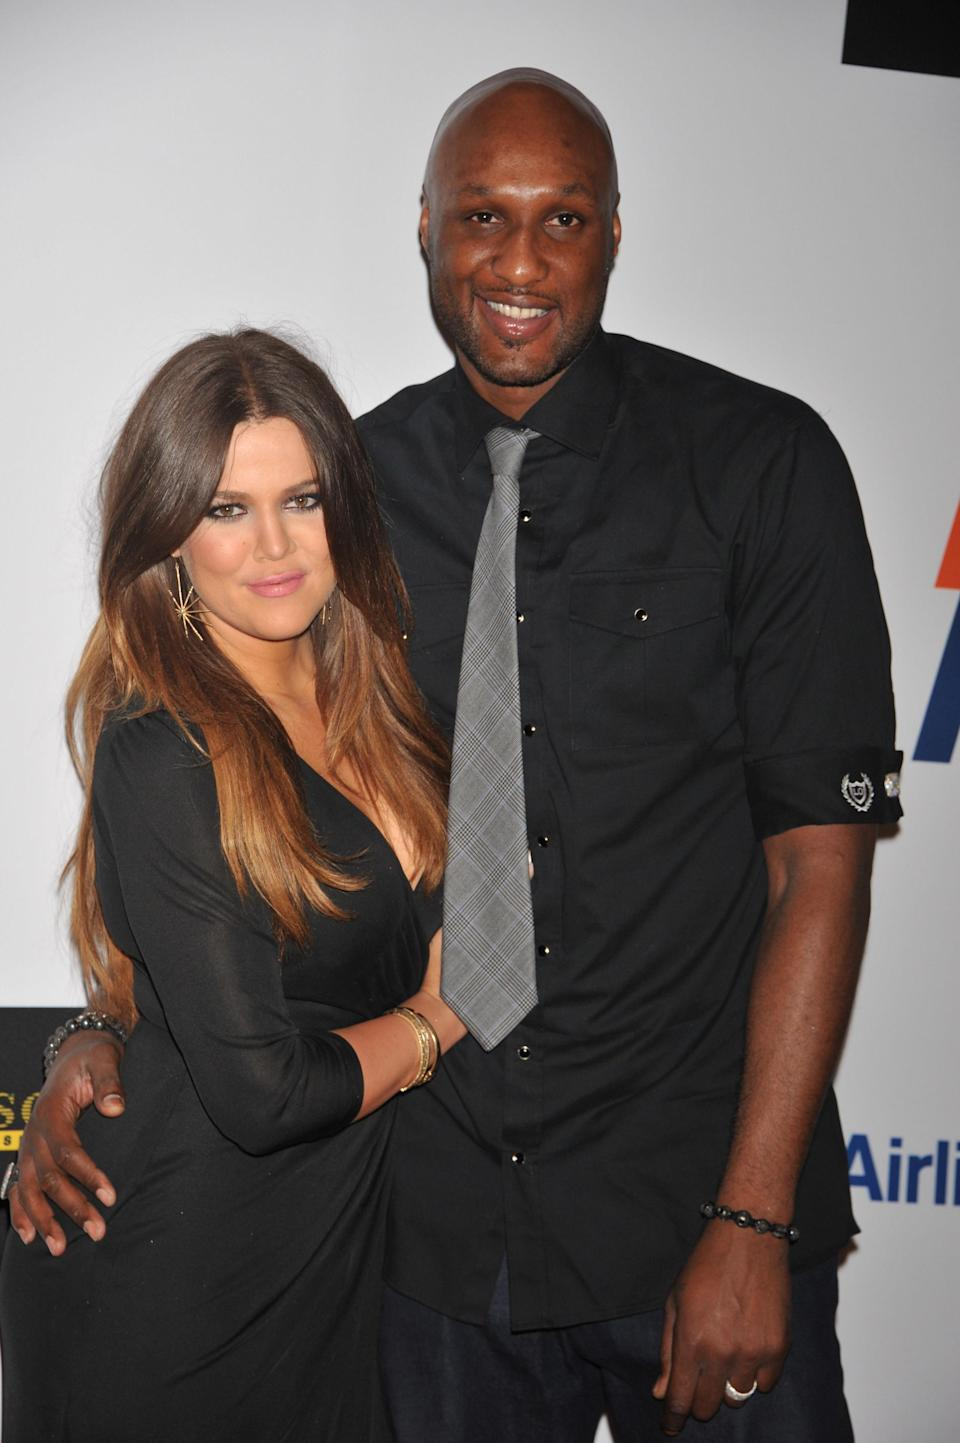 Not to add fuel to the recent fire, buutttt these two were one of my favorite couples in their heyday. Yes, they had a heyday. Don't fight me on this. The former NBA player and reality star were married in 2009 before splitting in 2013 and finalizing their divorce in 2016.